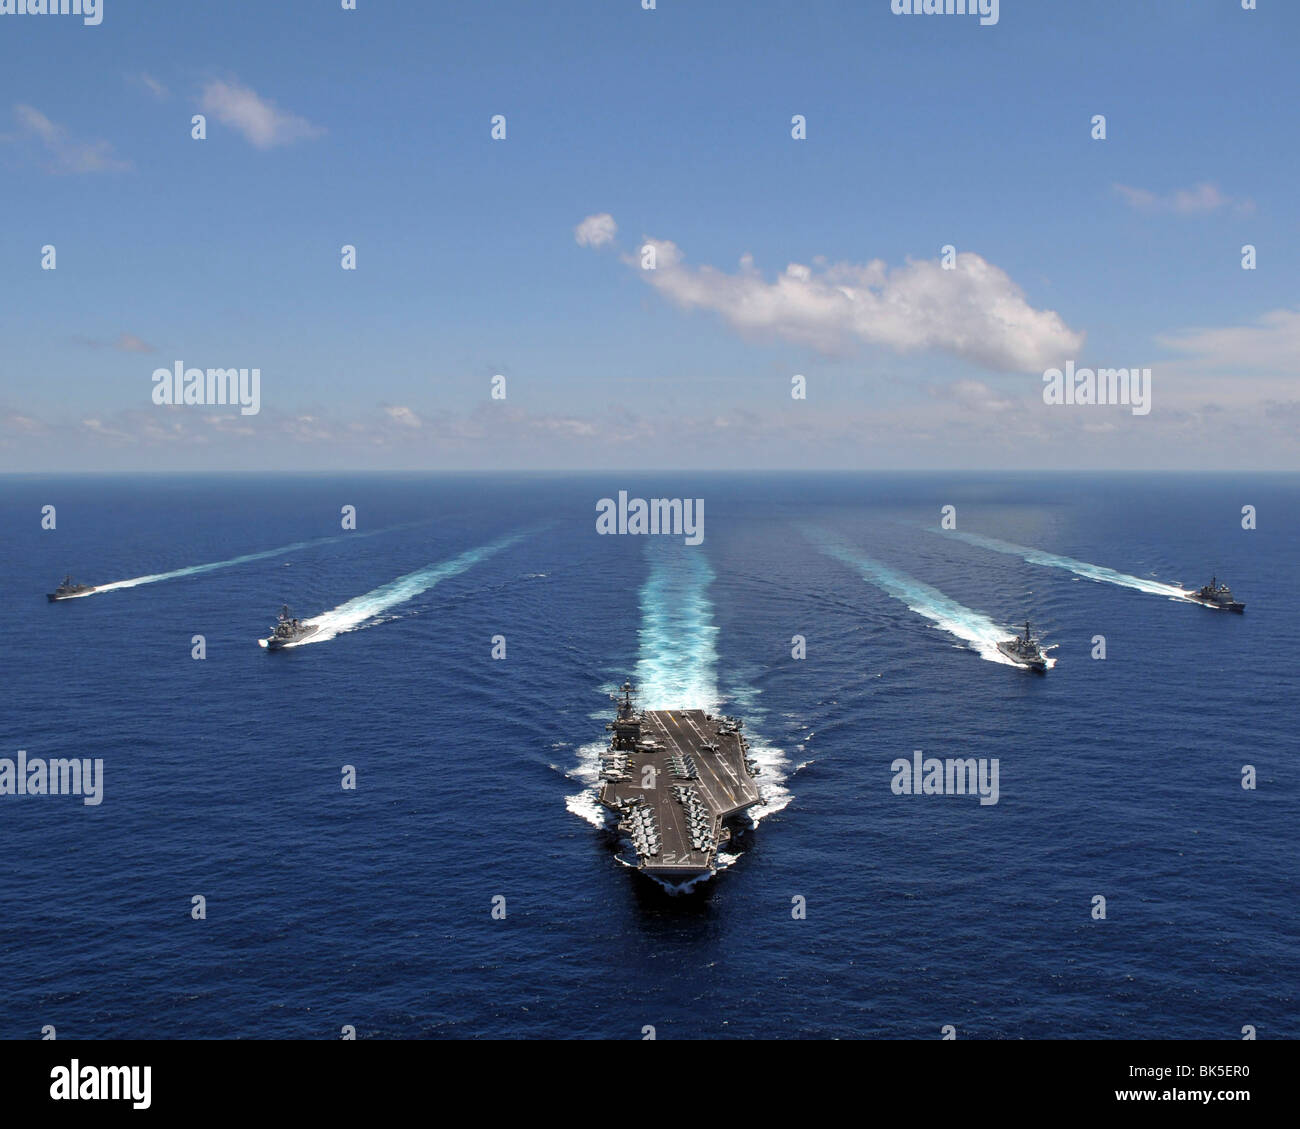 The aircraft carrier USS Abraham Lincoln (CVN-72) leads a formation of ships, Indian Ocean - Stock Image